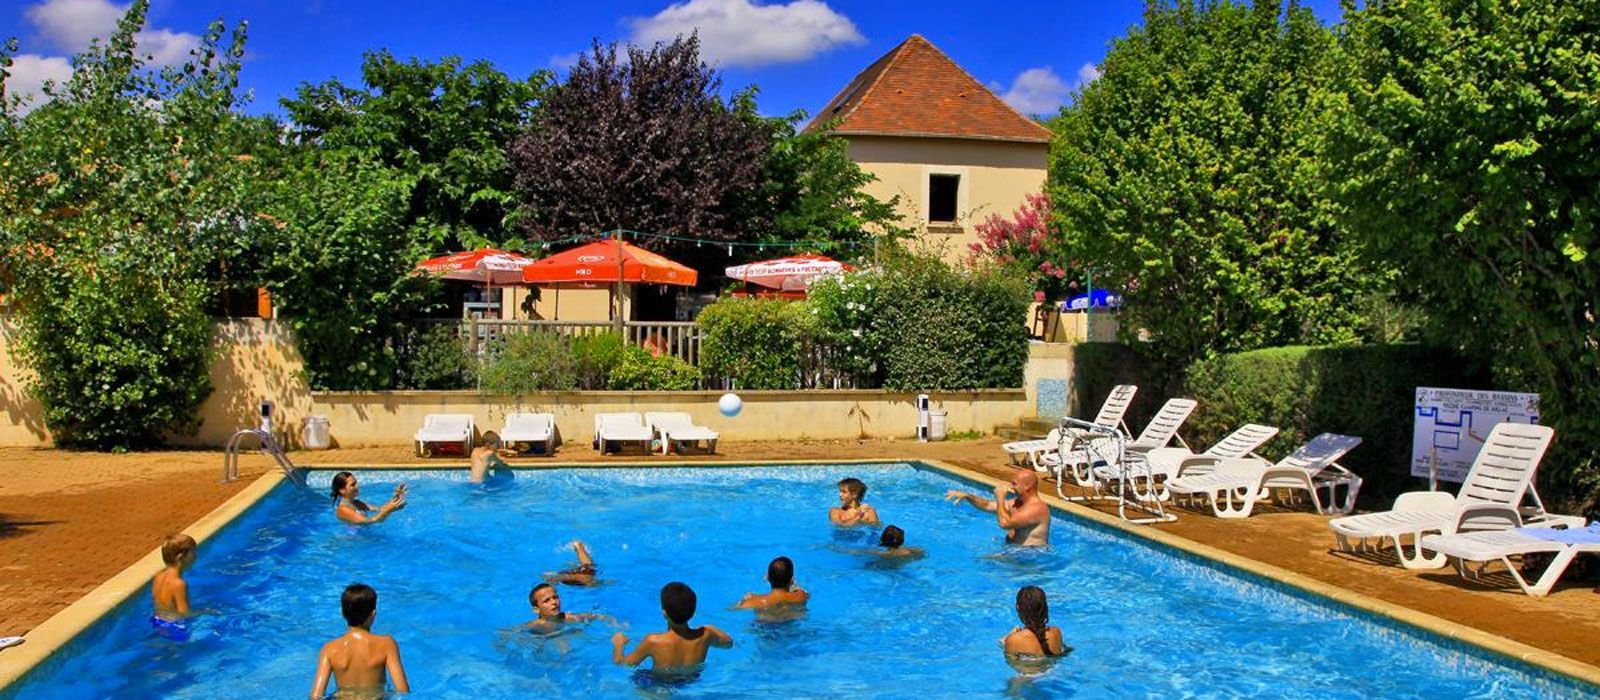 Camping swimming-pool Dordogne